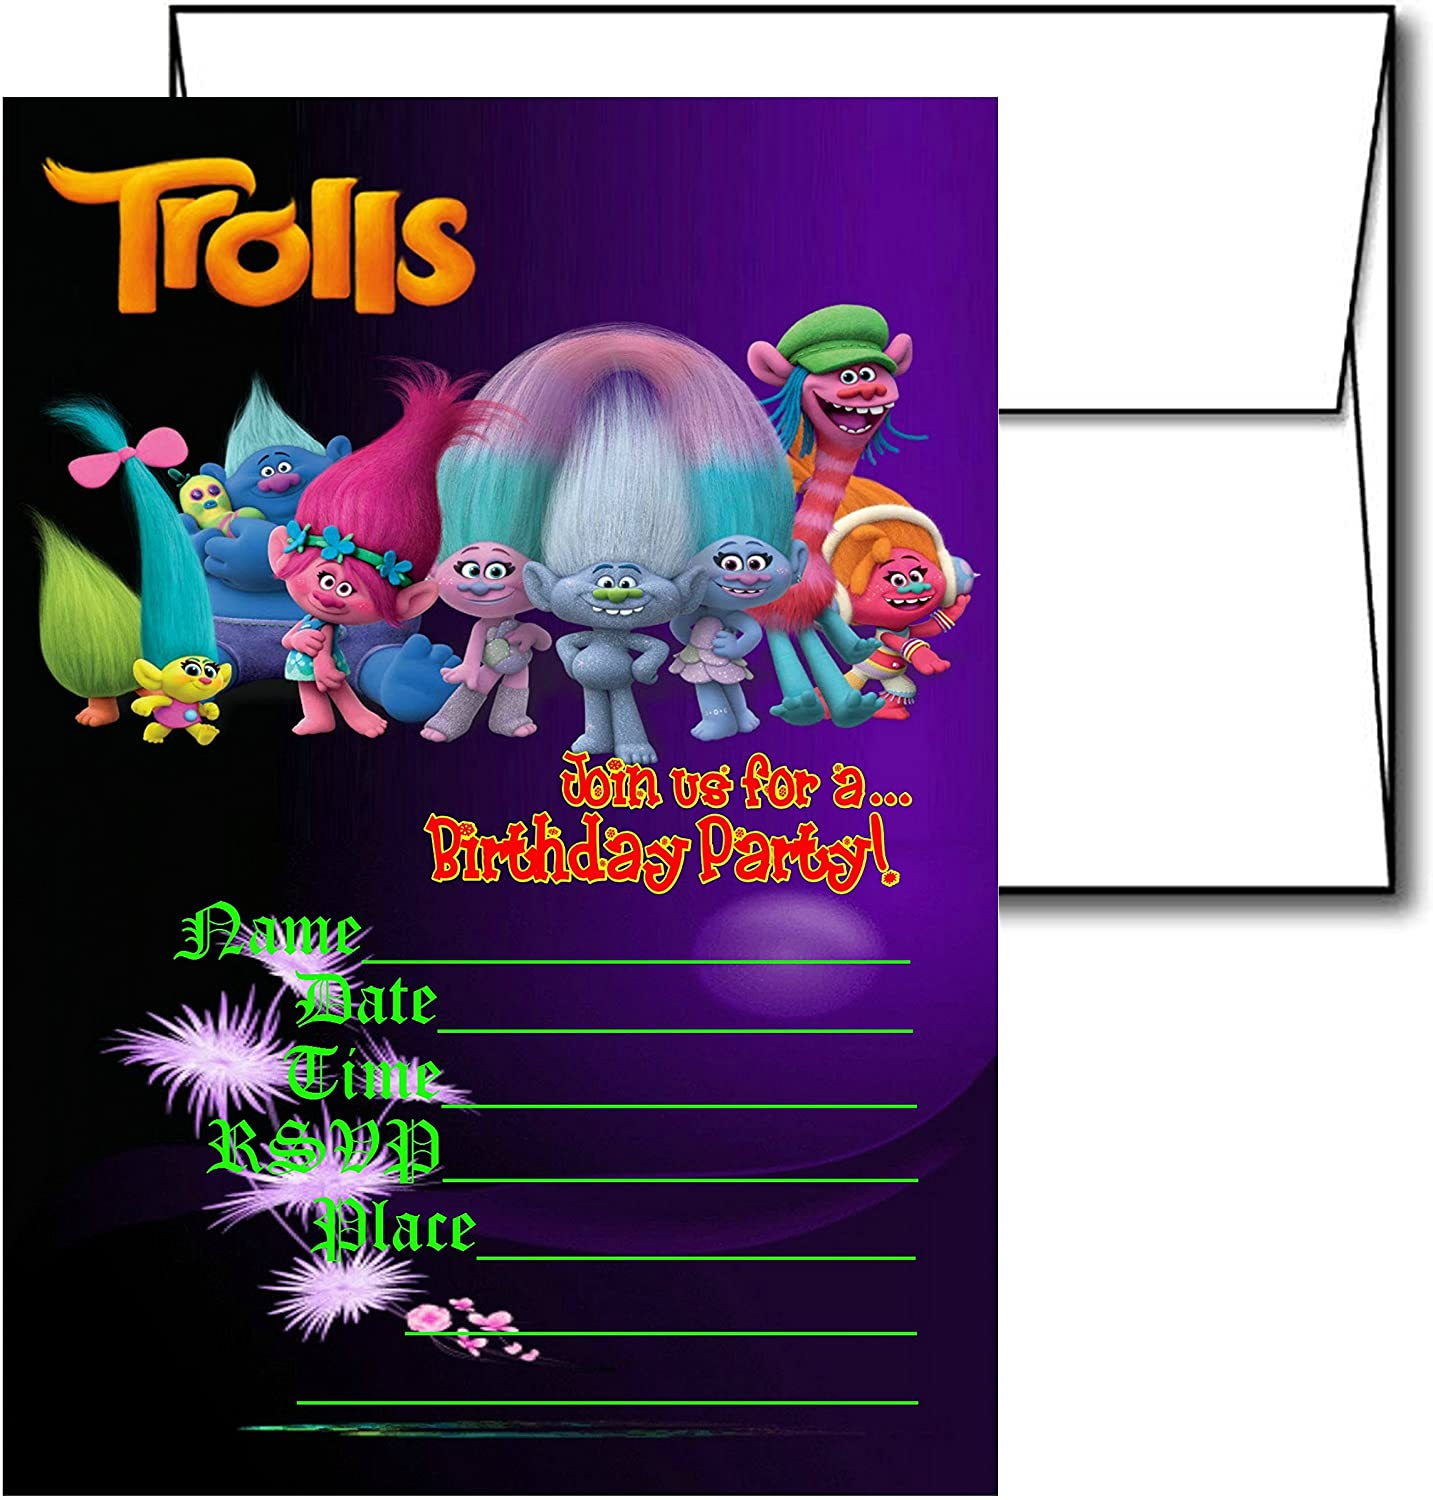 12 TROLLS Birthday Invitation Cards (12 White Envelops Included) #1